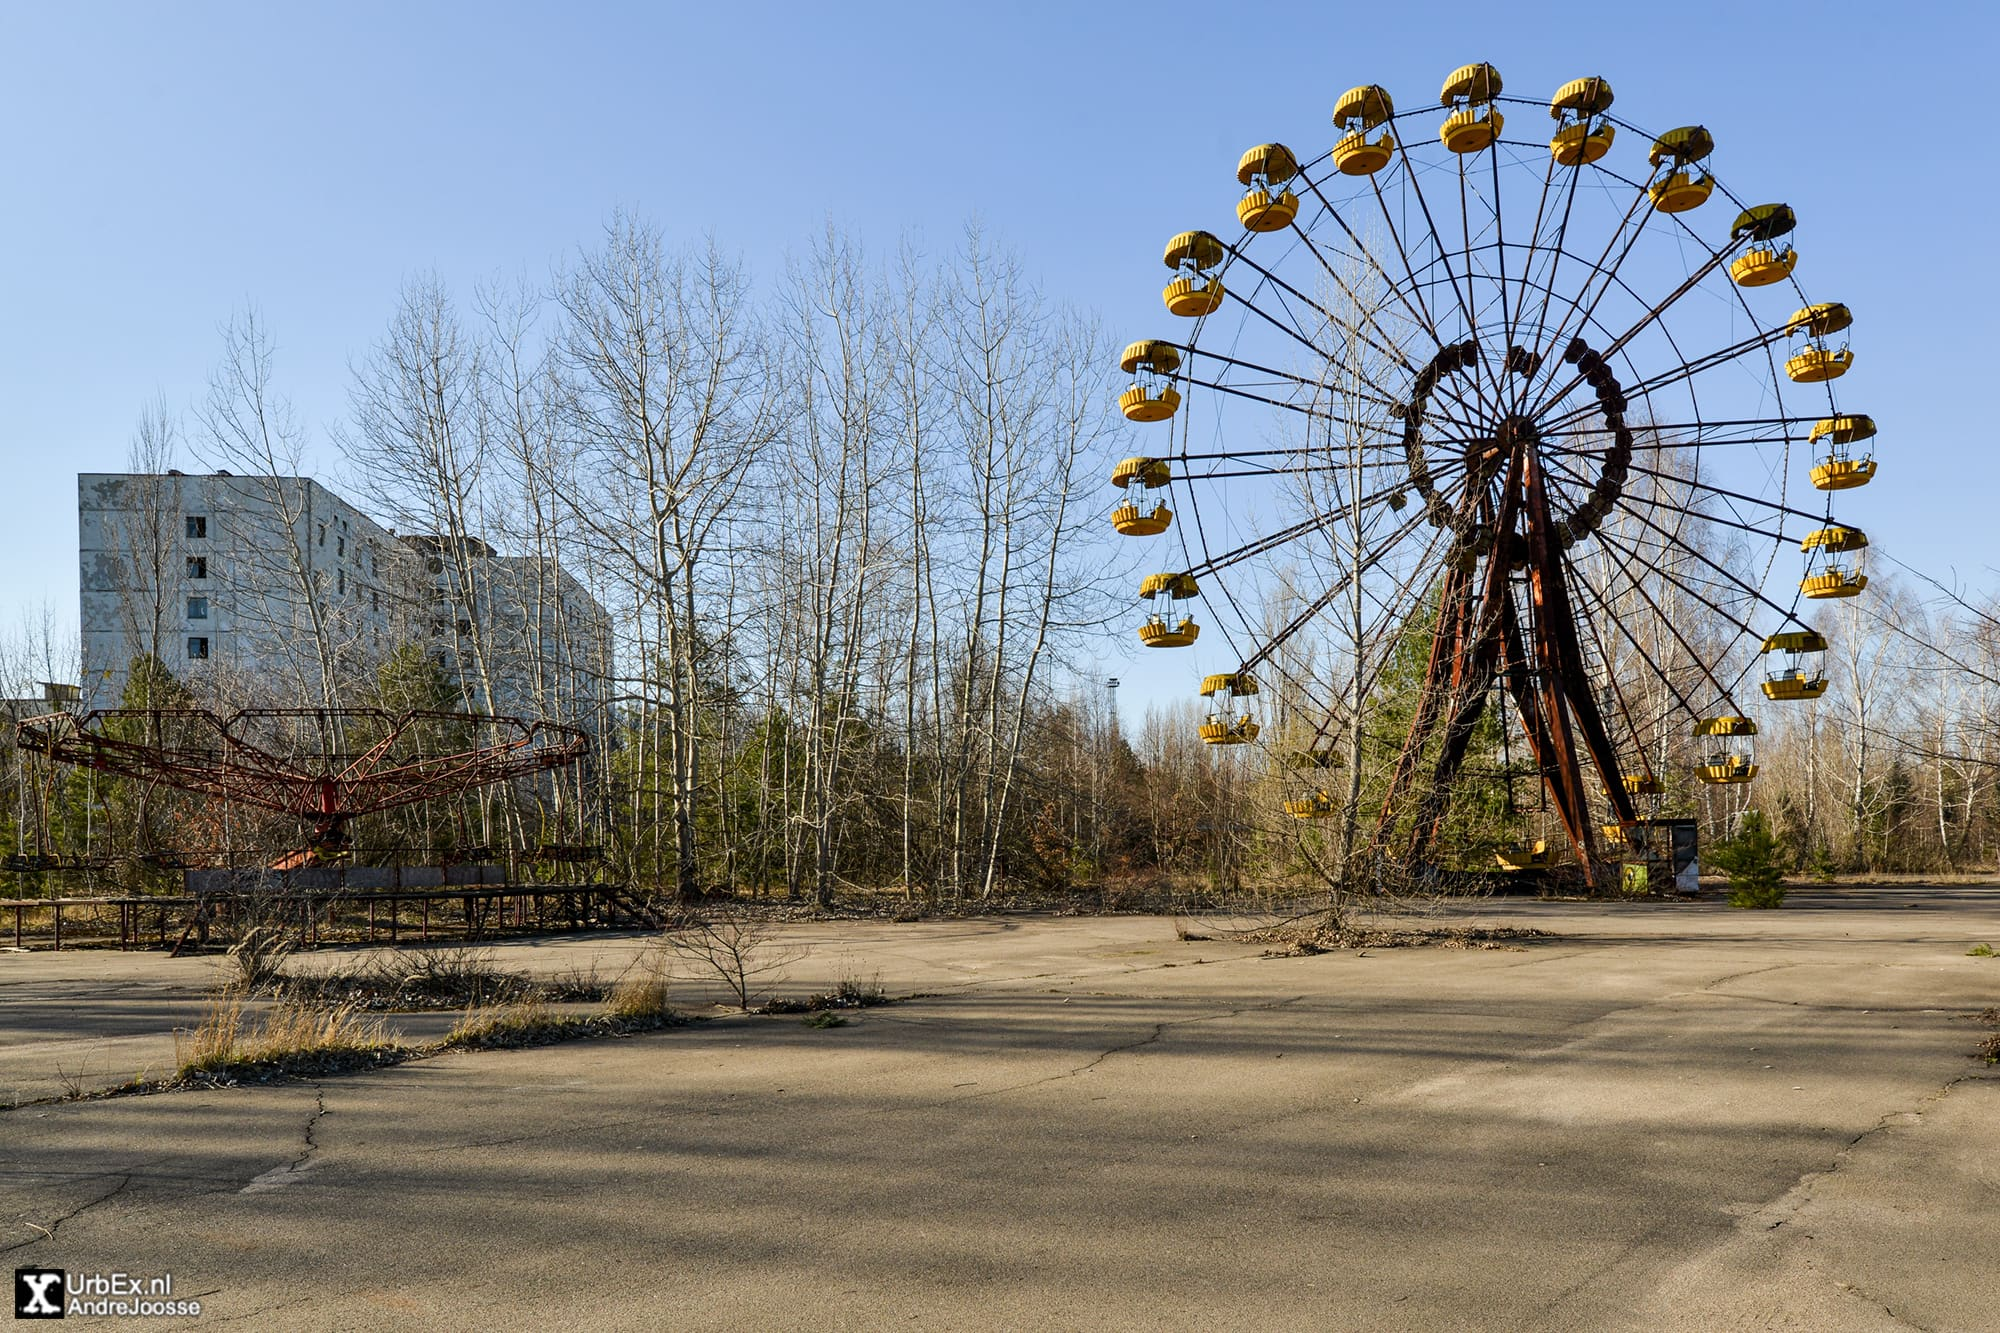 Pripyat amusement park